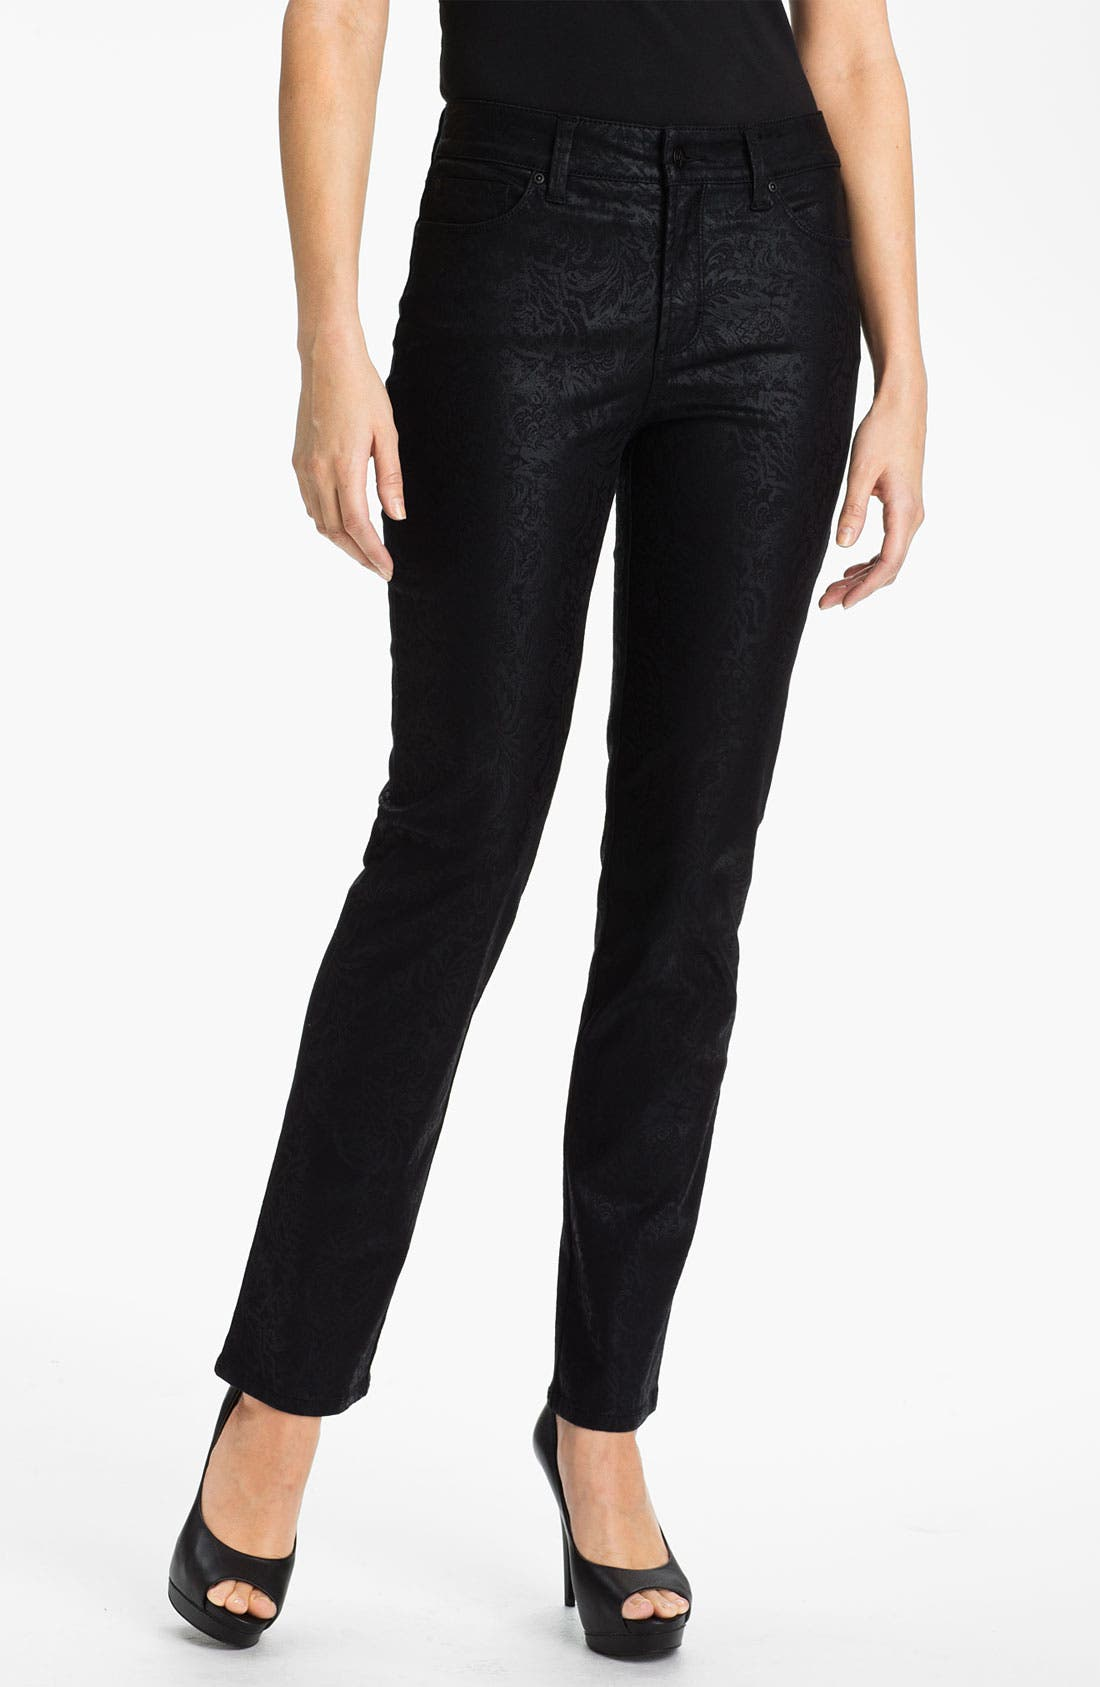 Alternate Image 1 Selected - NYDJ 'Sheri - Metallic Gilded Lily' Twill Skinny Jeans